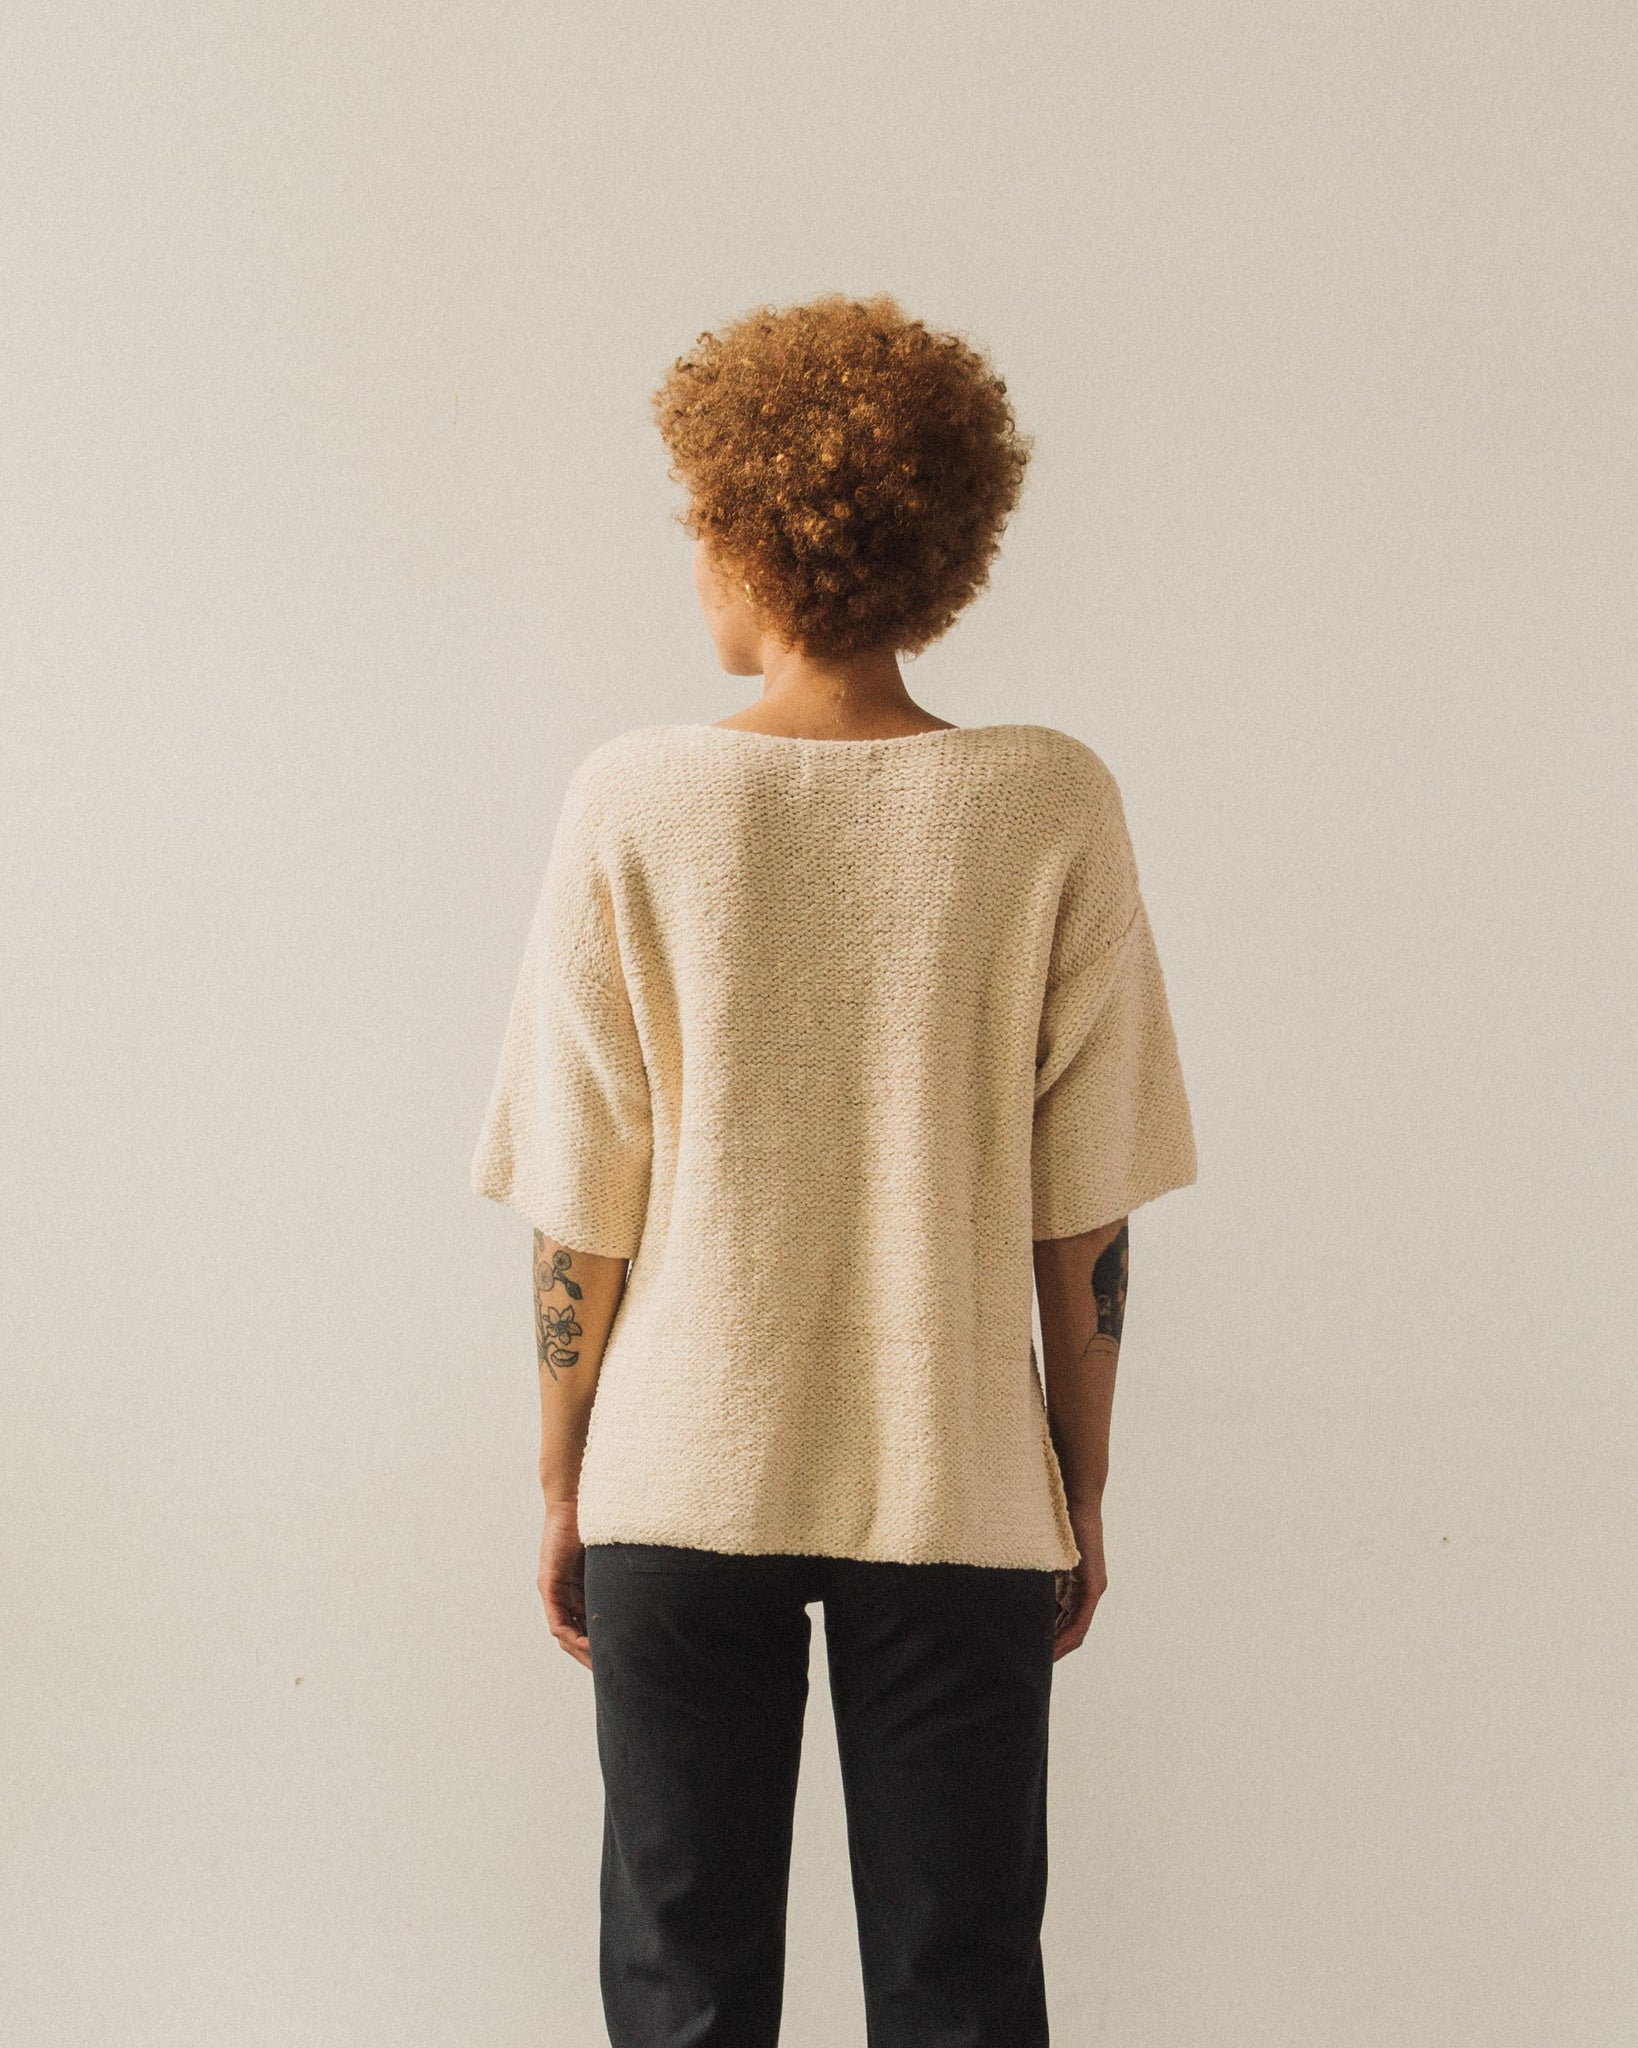 Delphine Playa Top, All Provence Linen